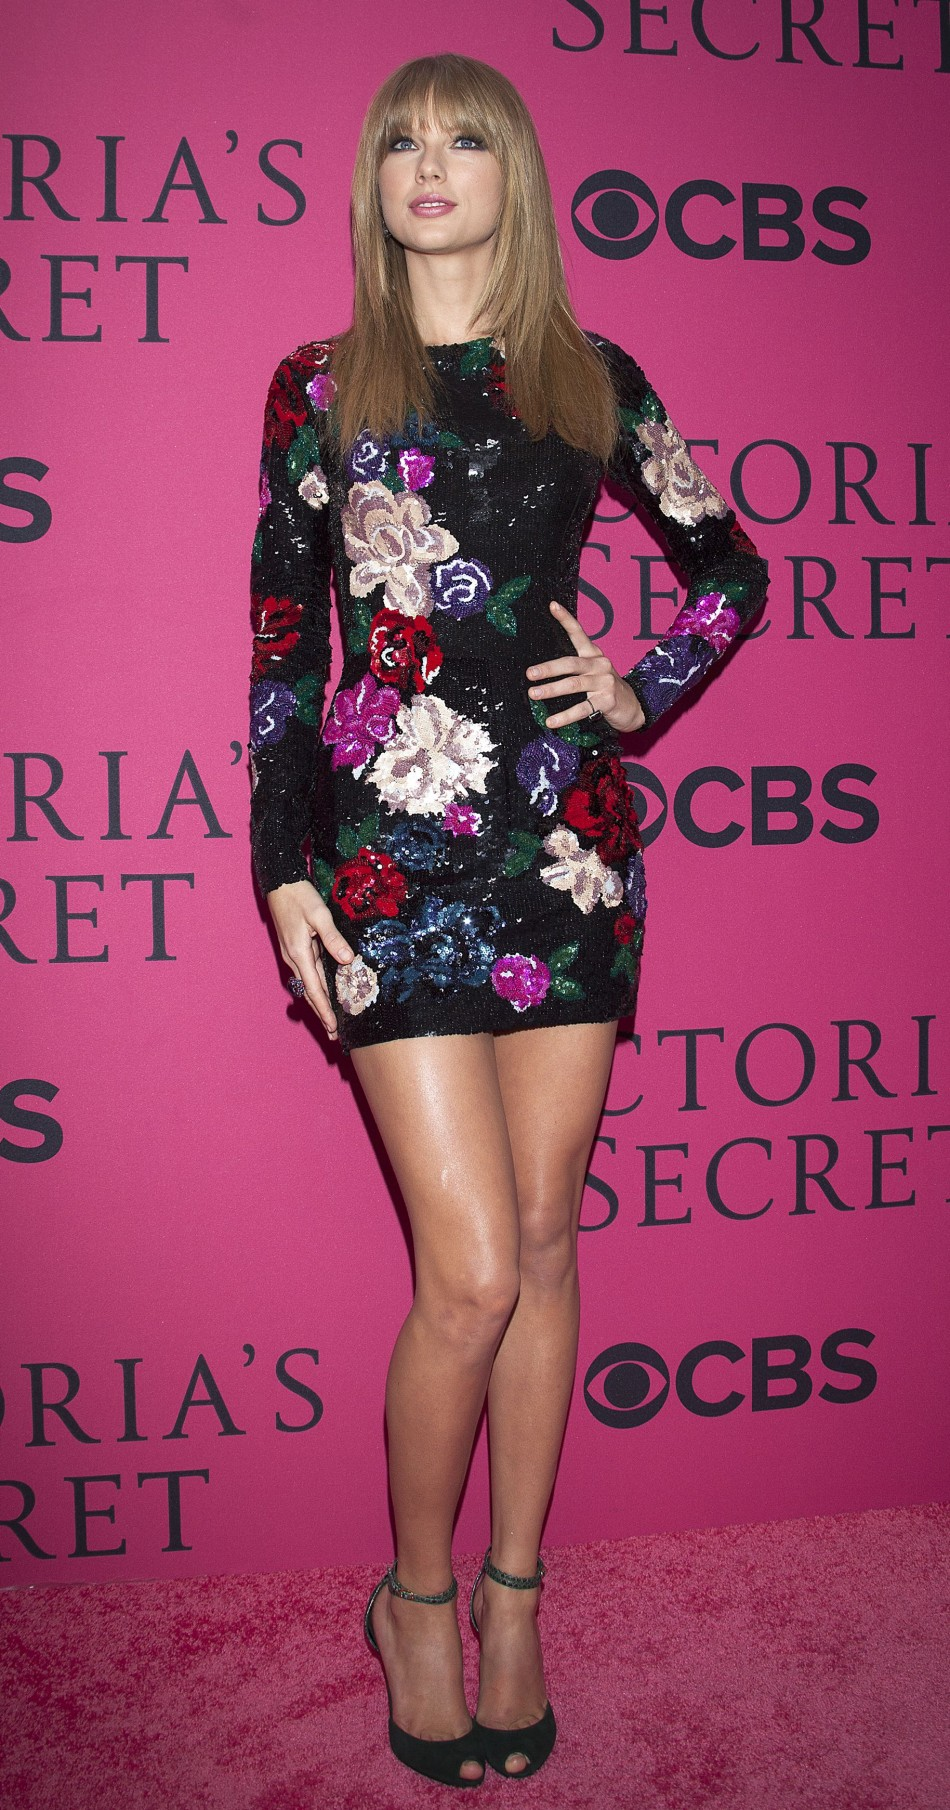 Taylor Swift shows off her catwalk worthy legs in mini dress. (Photo: REUTERS/Carlo Allegri)